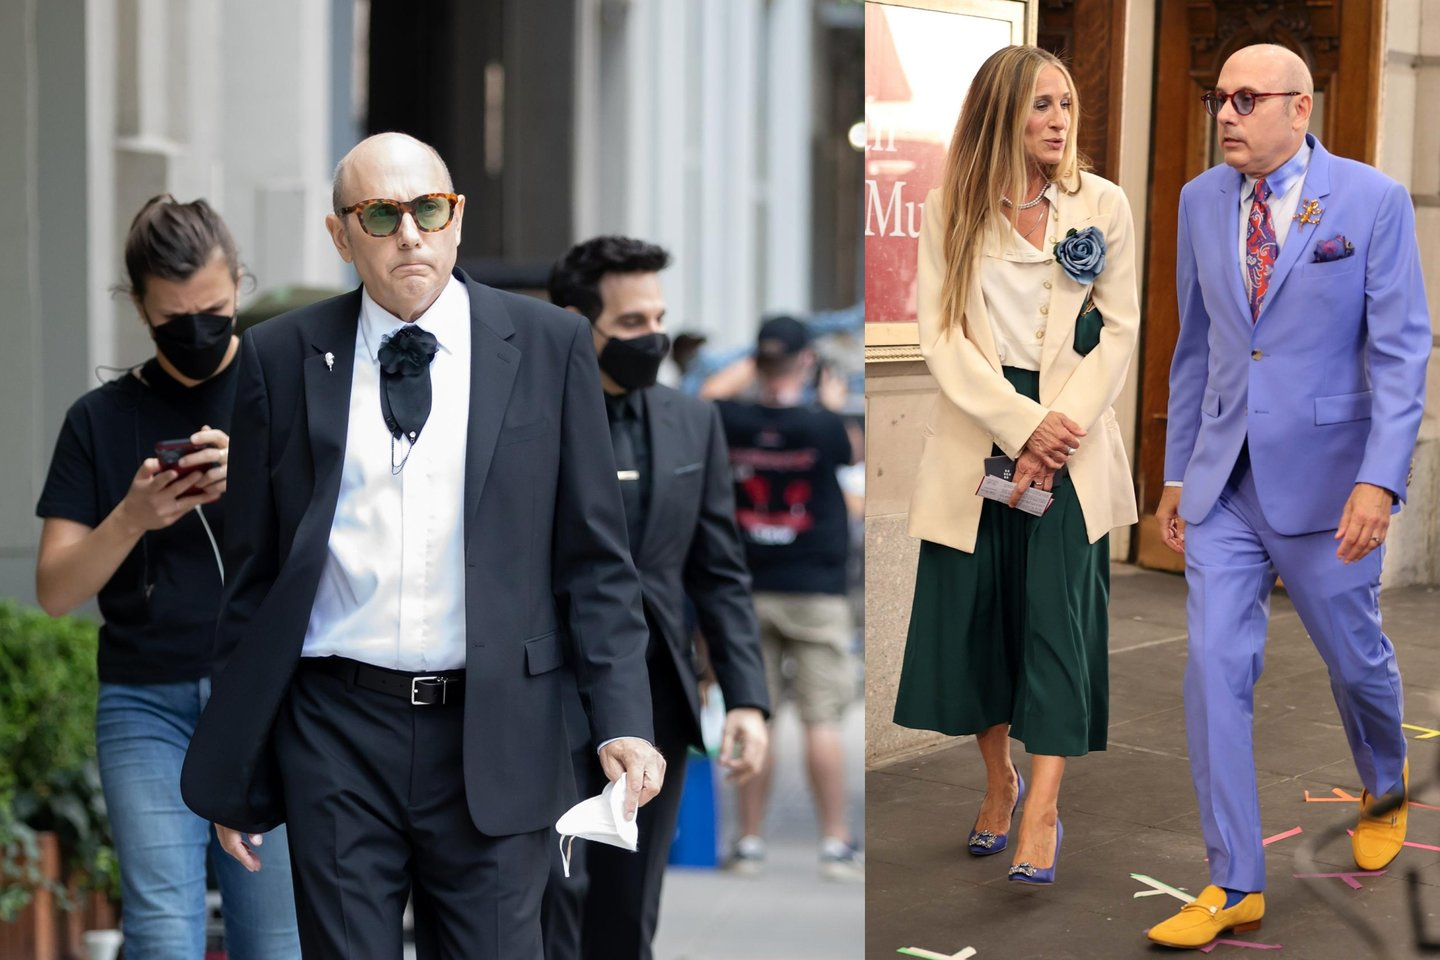 The life of 57-year-old Sex and the City star Willie Garson has come to an end.